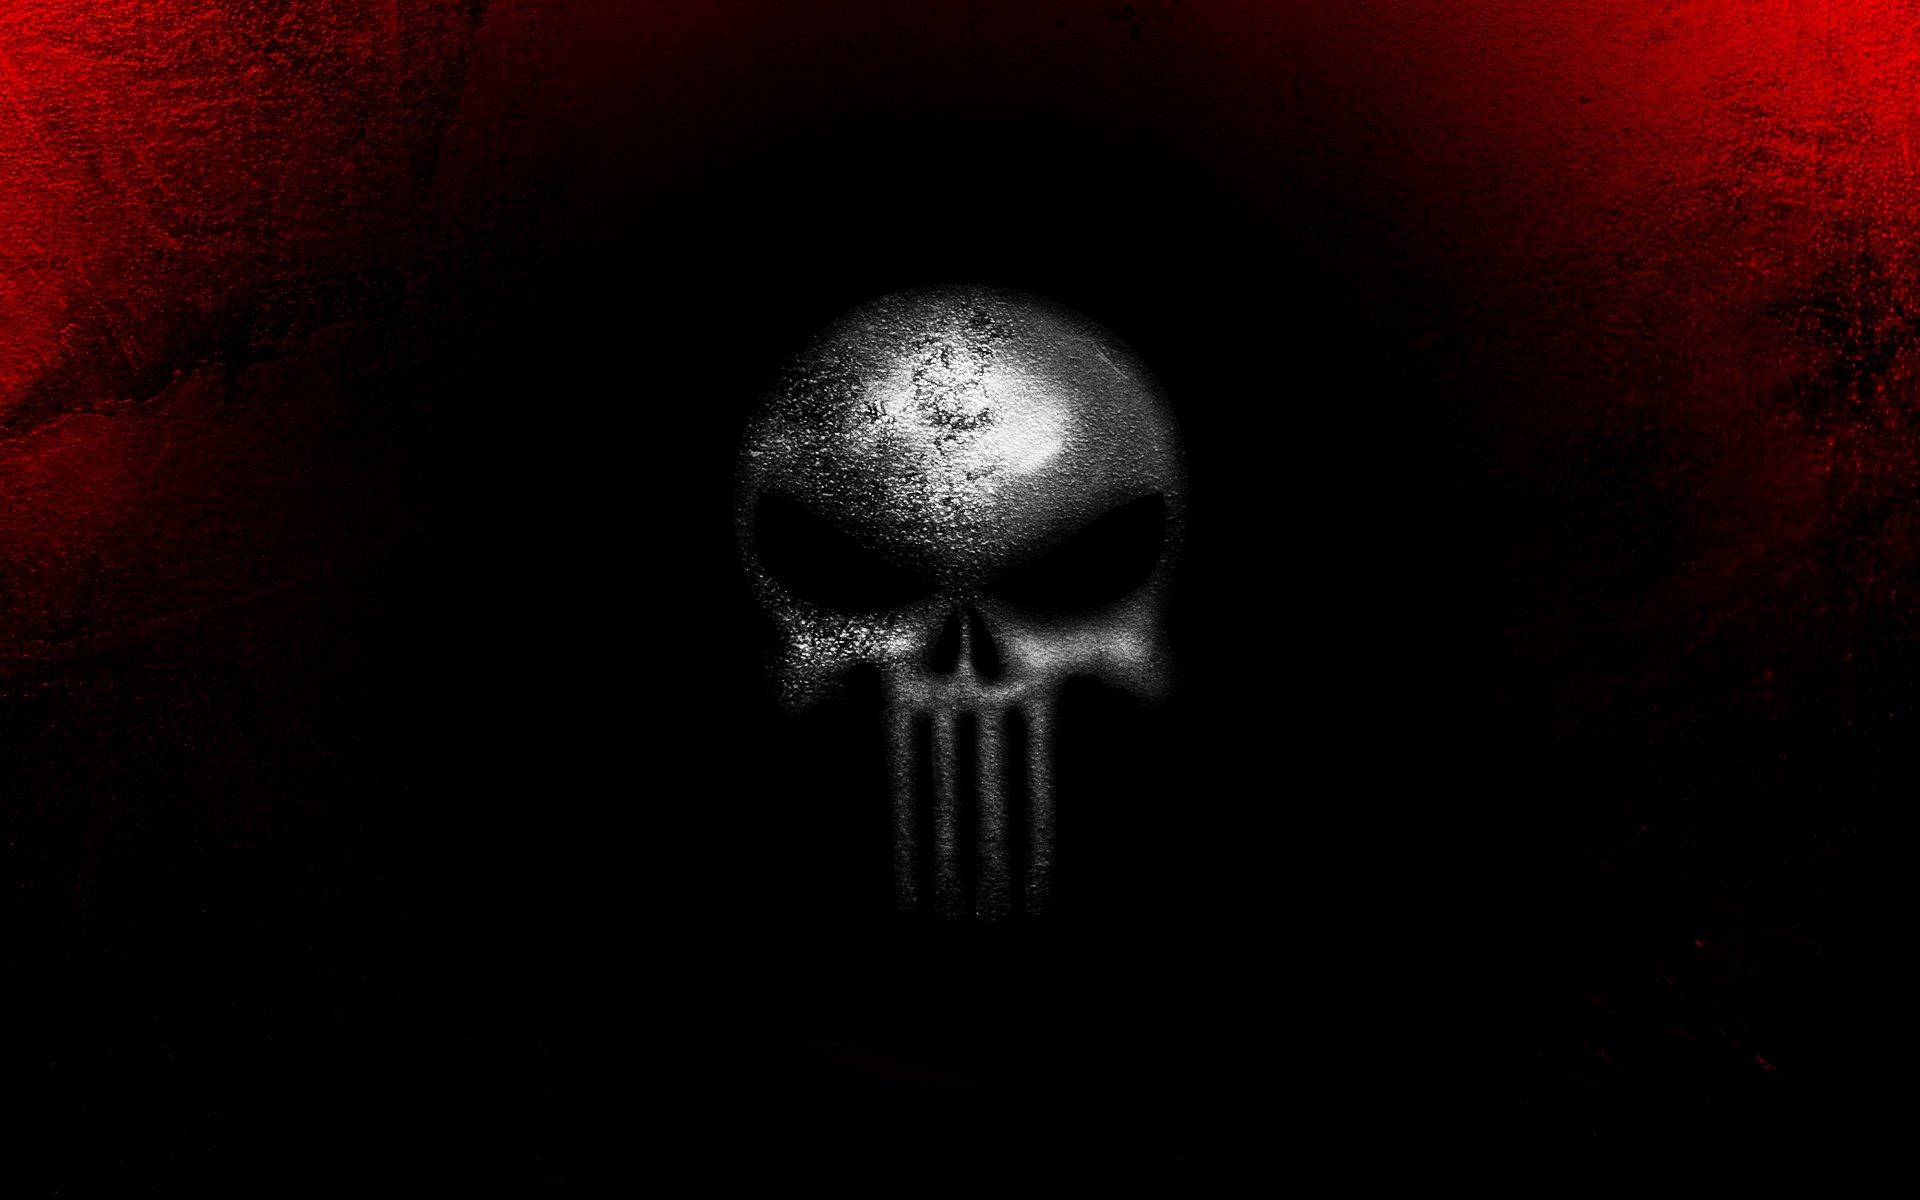 The Punisher Wallpapers Wallpaper   HD Wallpapers   Pinterest   Punisher  and Wallpaper